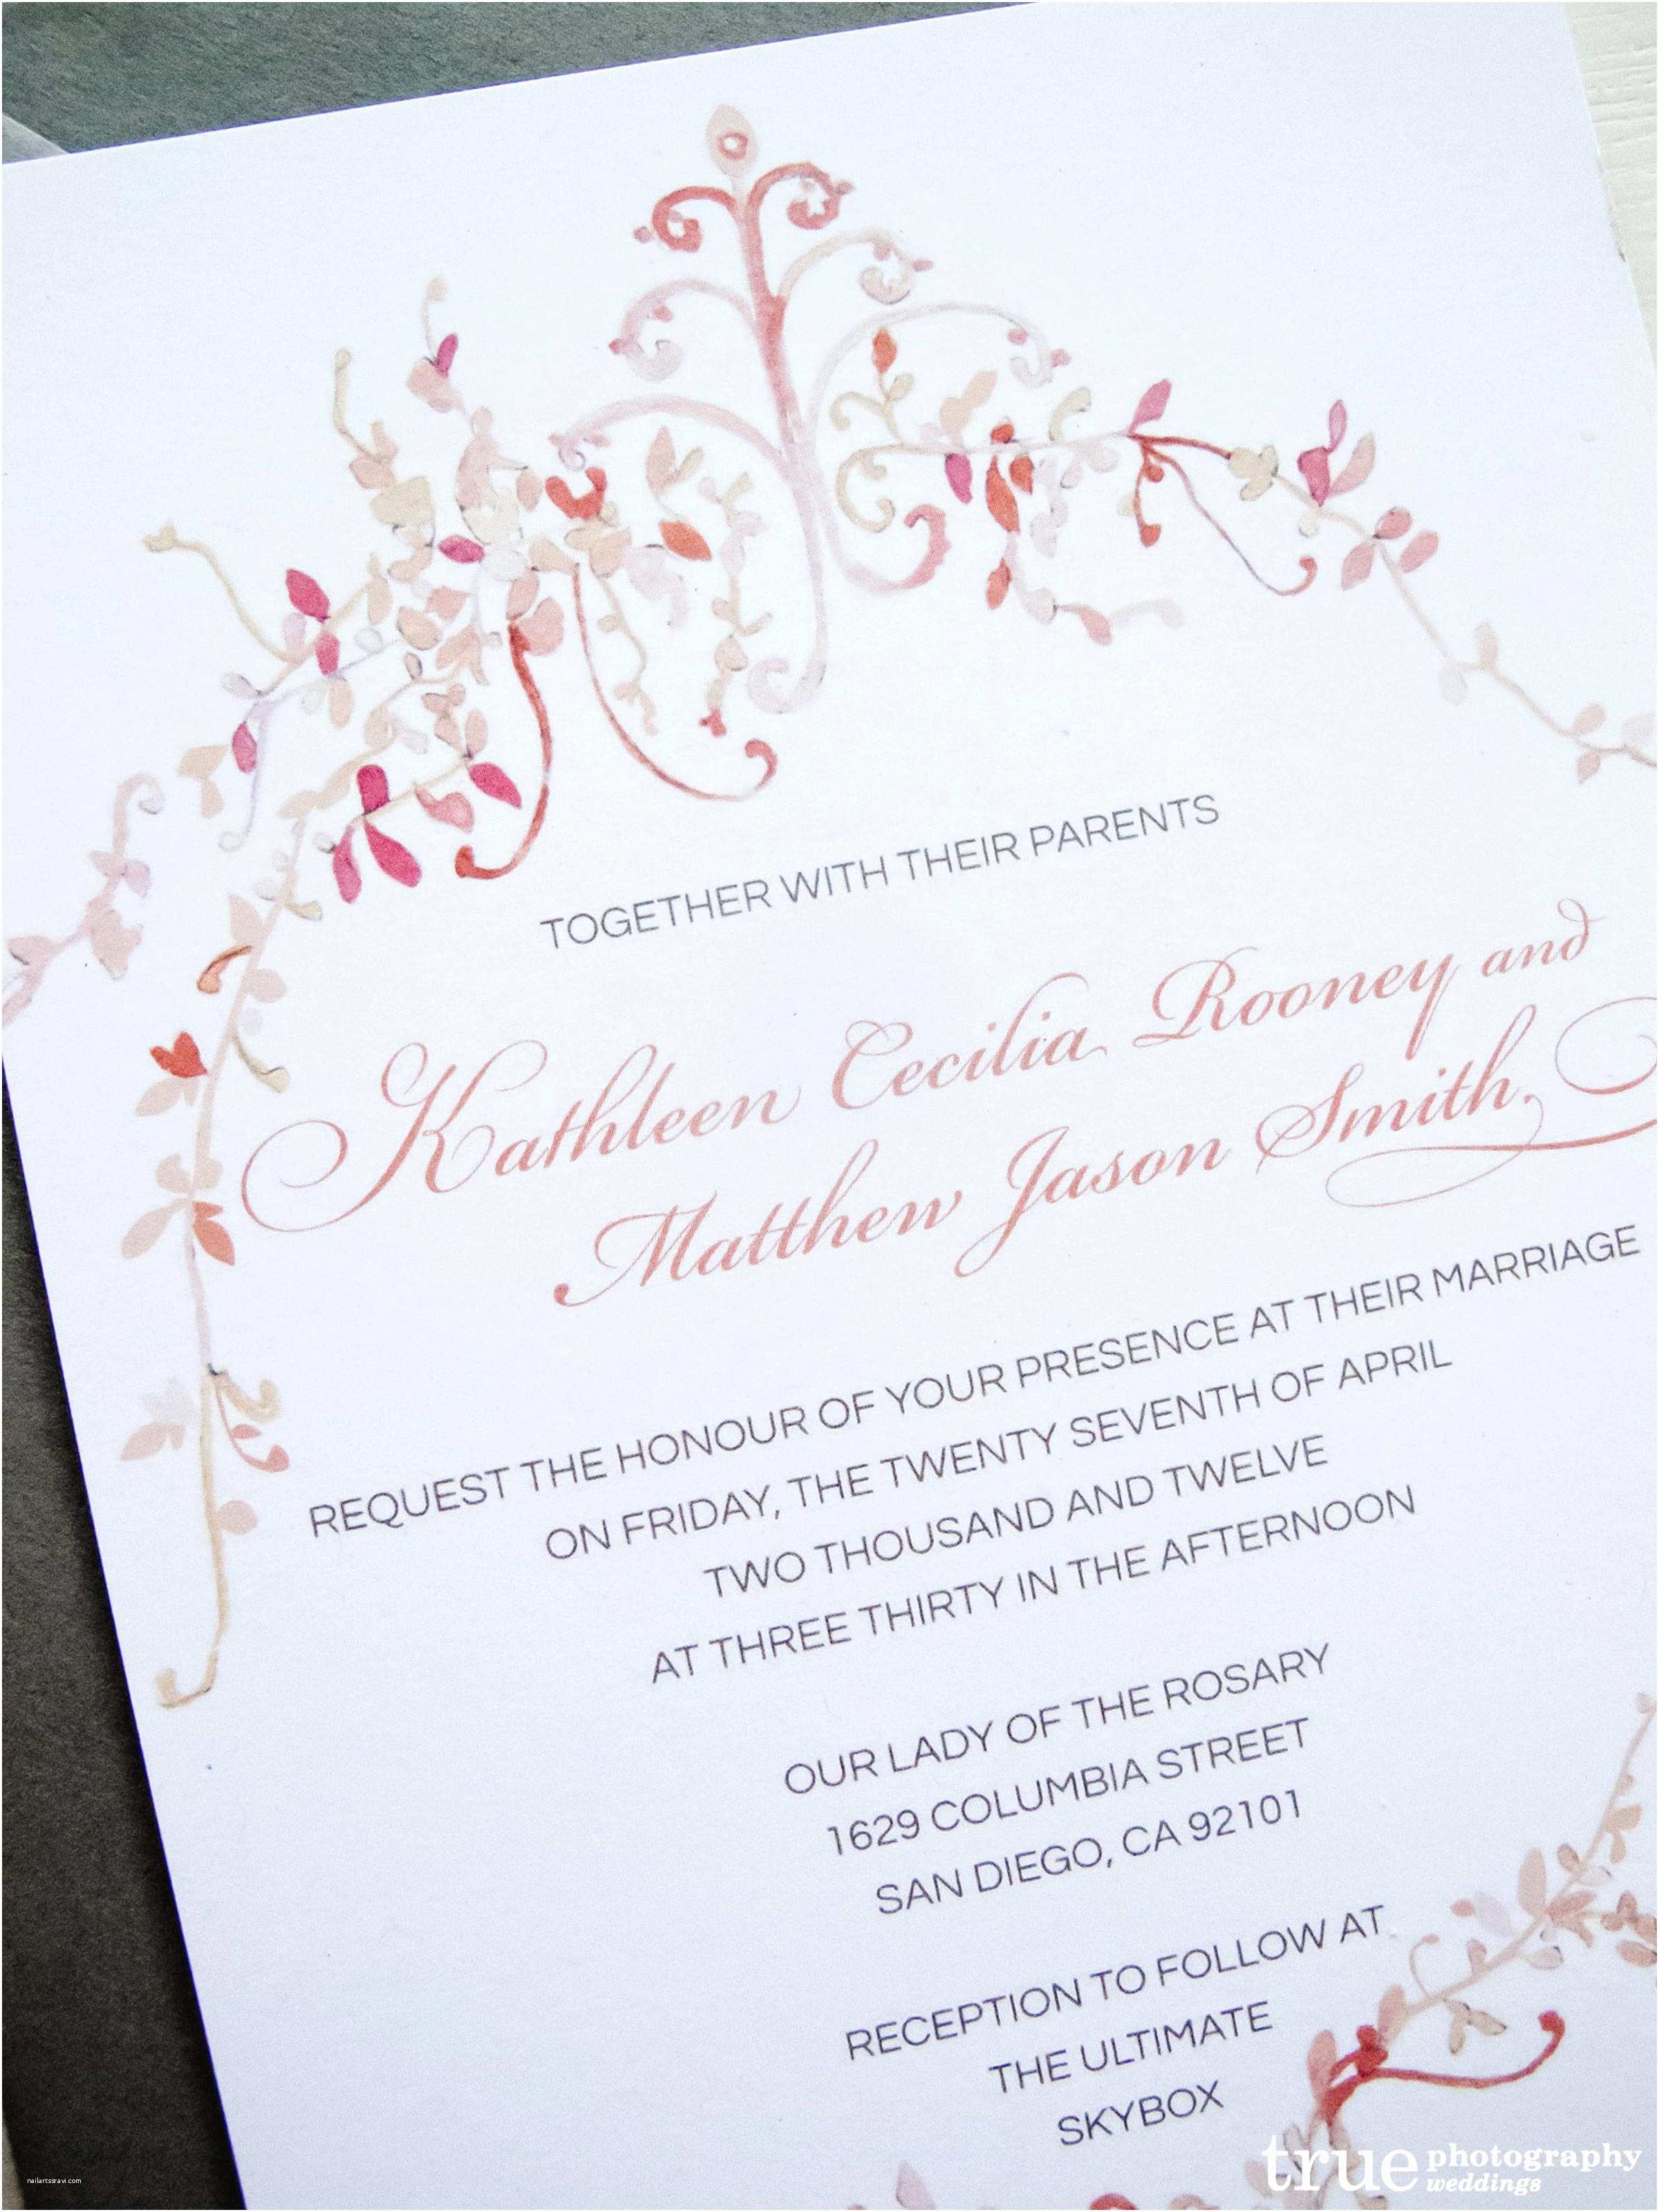 Wedding Invitation Prices Wedding Invitation Prices south Africa 28 Images 10